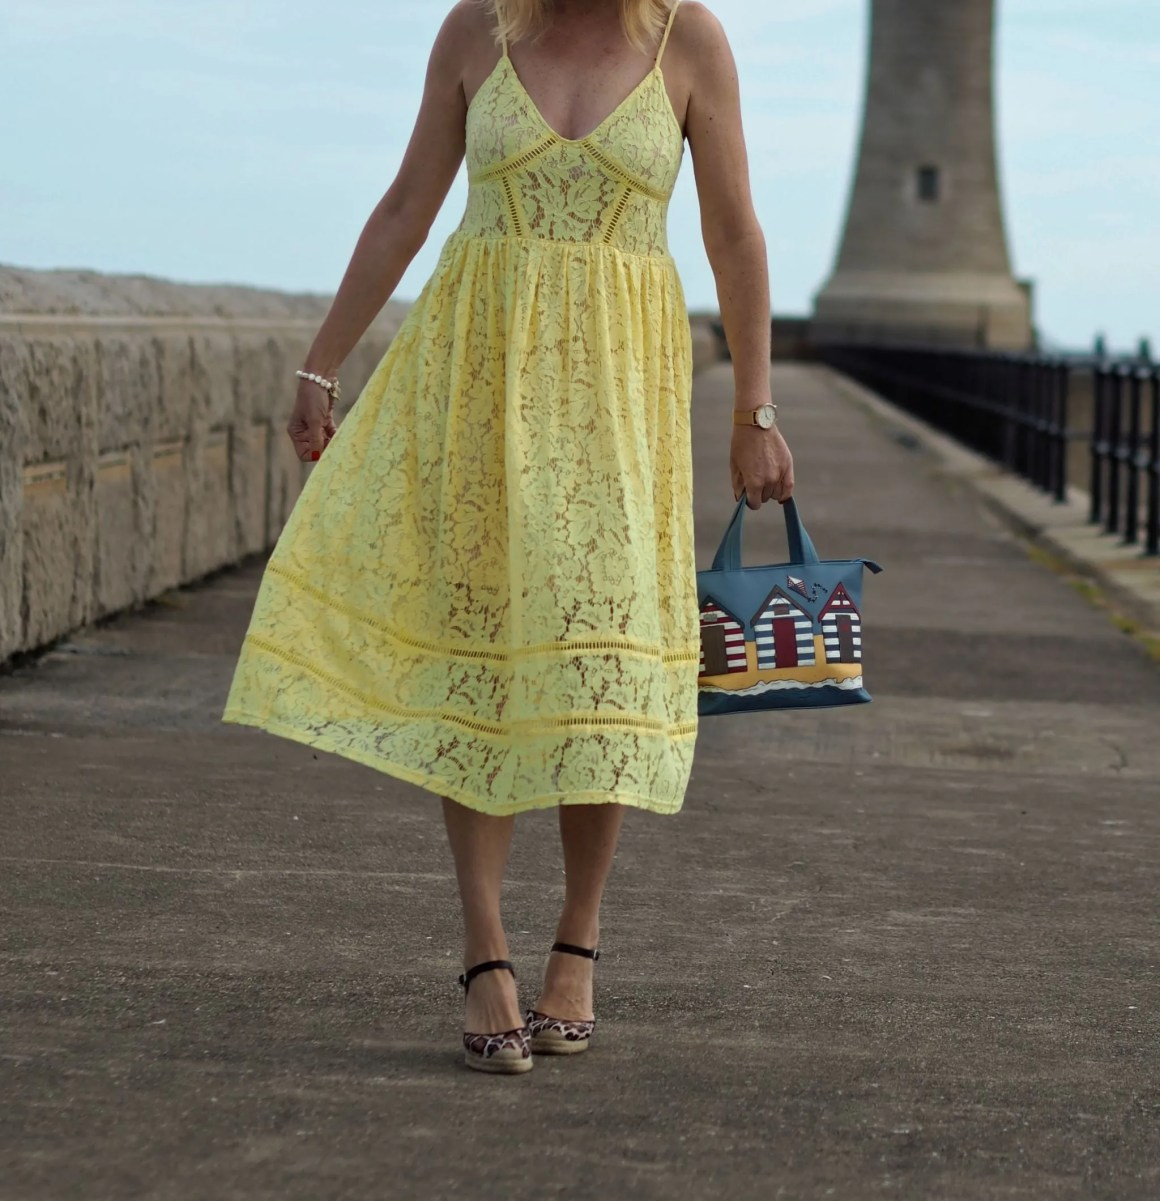 what-lizzy-loves-yellow-lace-midi-dress-yellowlacedress-leopard-espadrilles-beach-hut-bag-tynemouth-north-pier